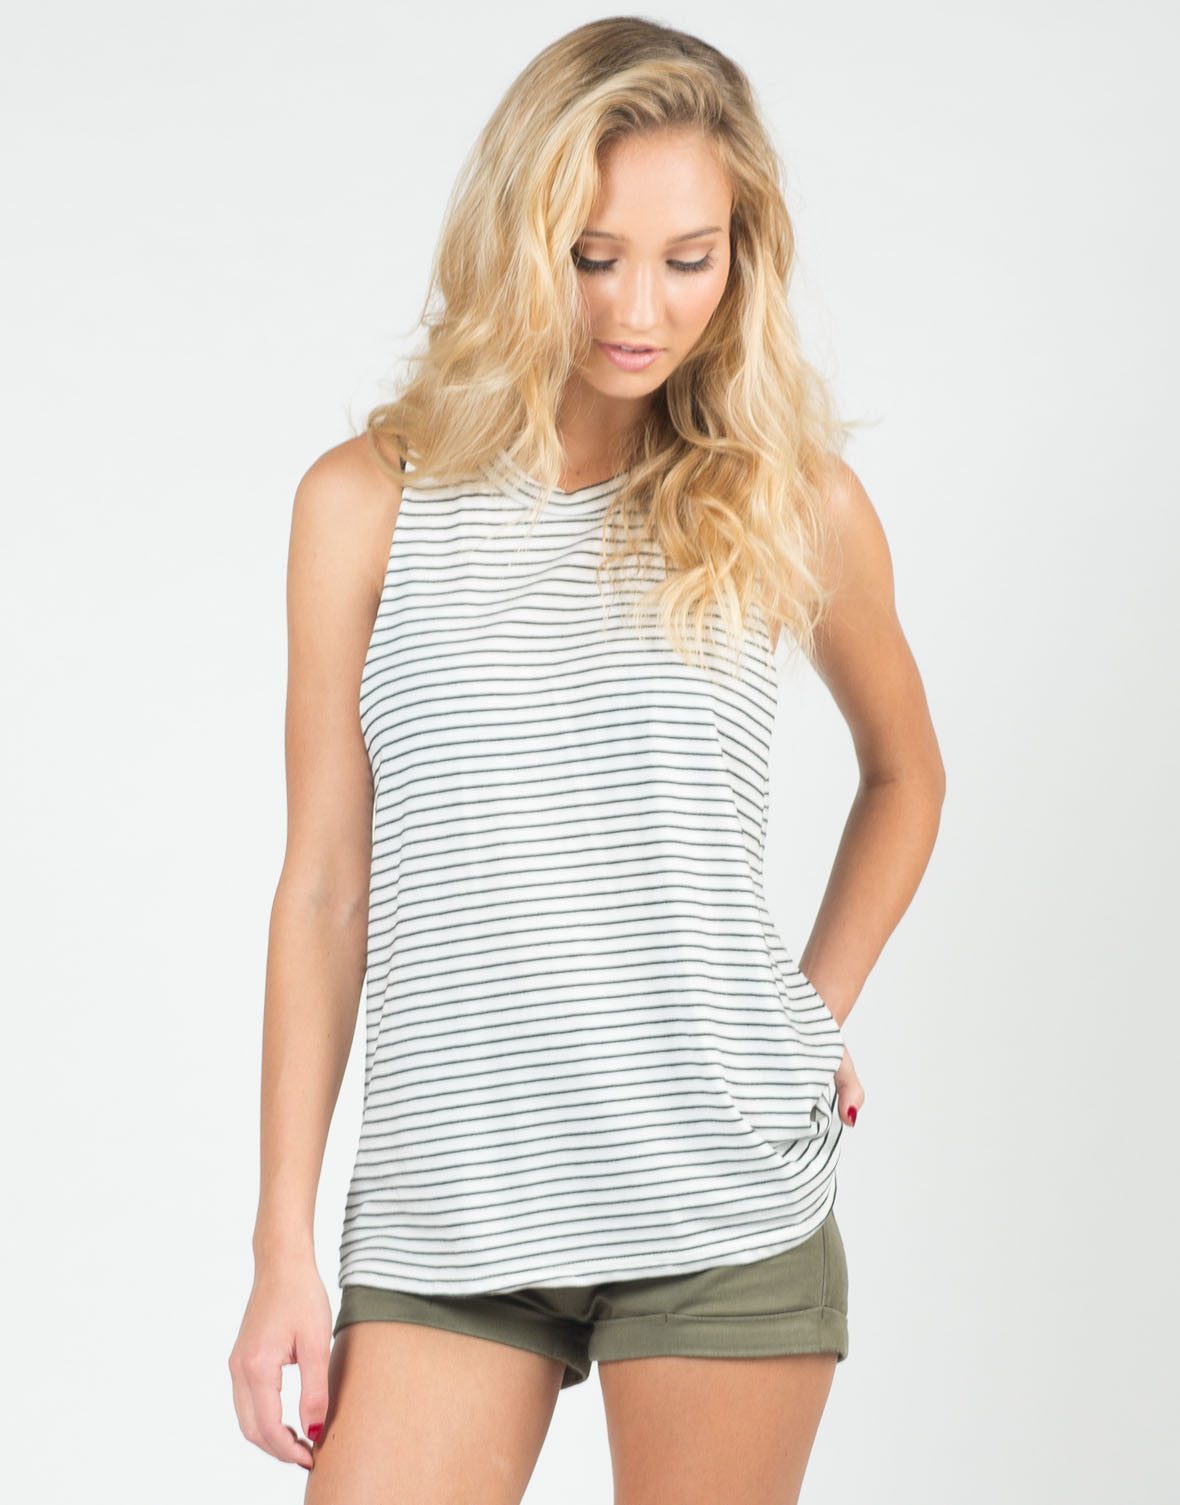 Front View of Black Striped Muscle Tee